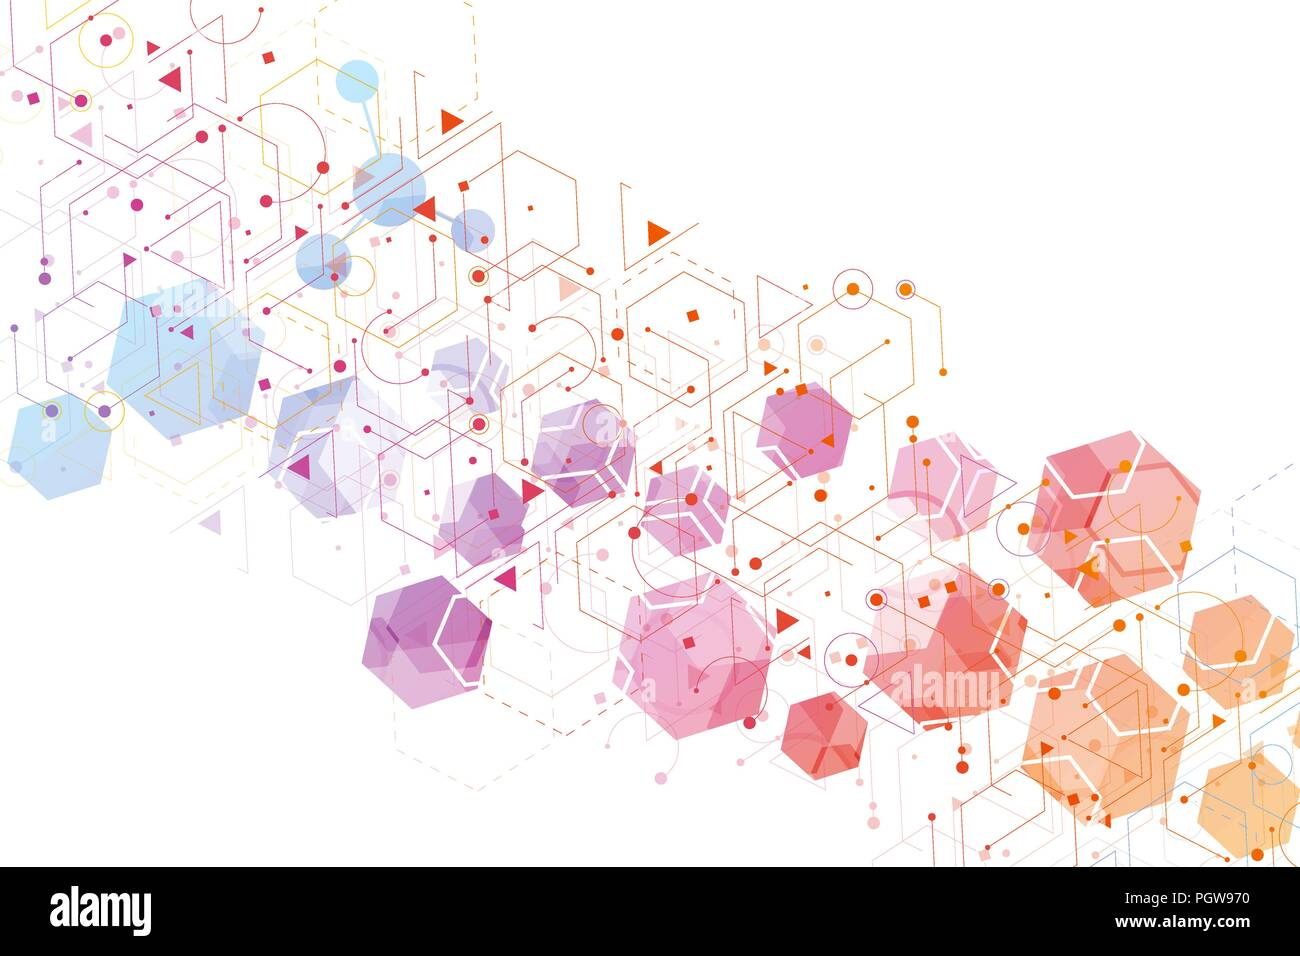 Hexagonal abstract background. Big Data Visualization. Global network connection. Medical, technology, science background. Vector illustration. - Stock Image